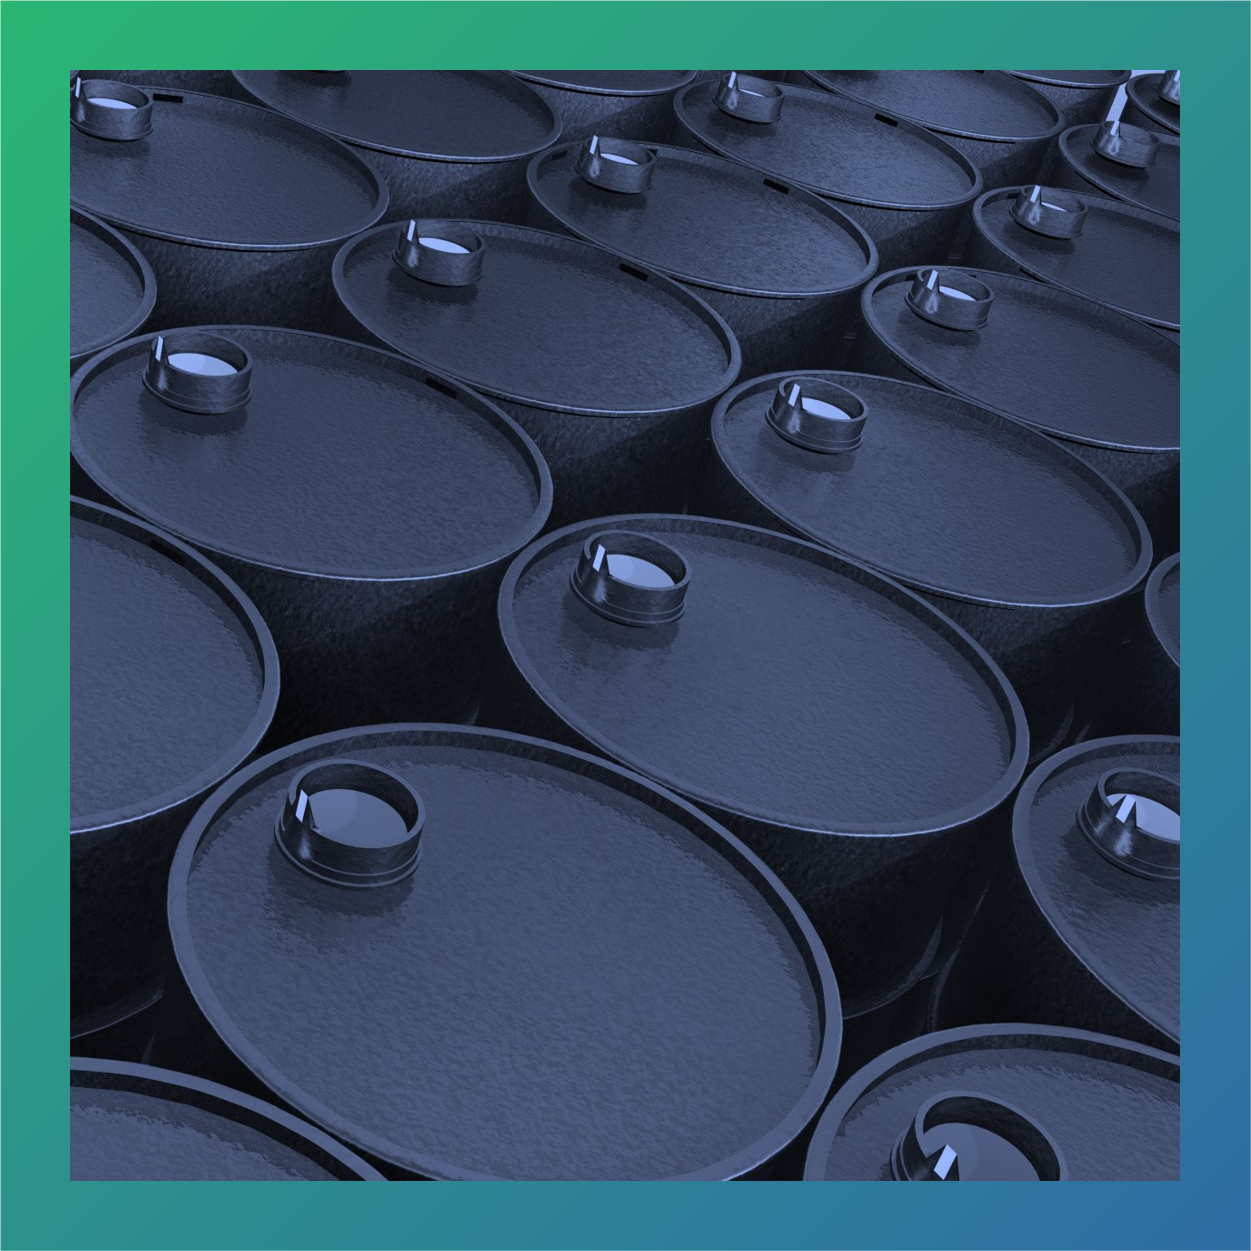 Works With Heavy Crude Oil - MSM-based DRAs are effective in heavy crude oil, a challenging fluid in which many traditional DRAs are ineffective. They're also shear stable under conditions for real-world pipeline transportation of heavy crudes.